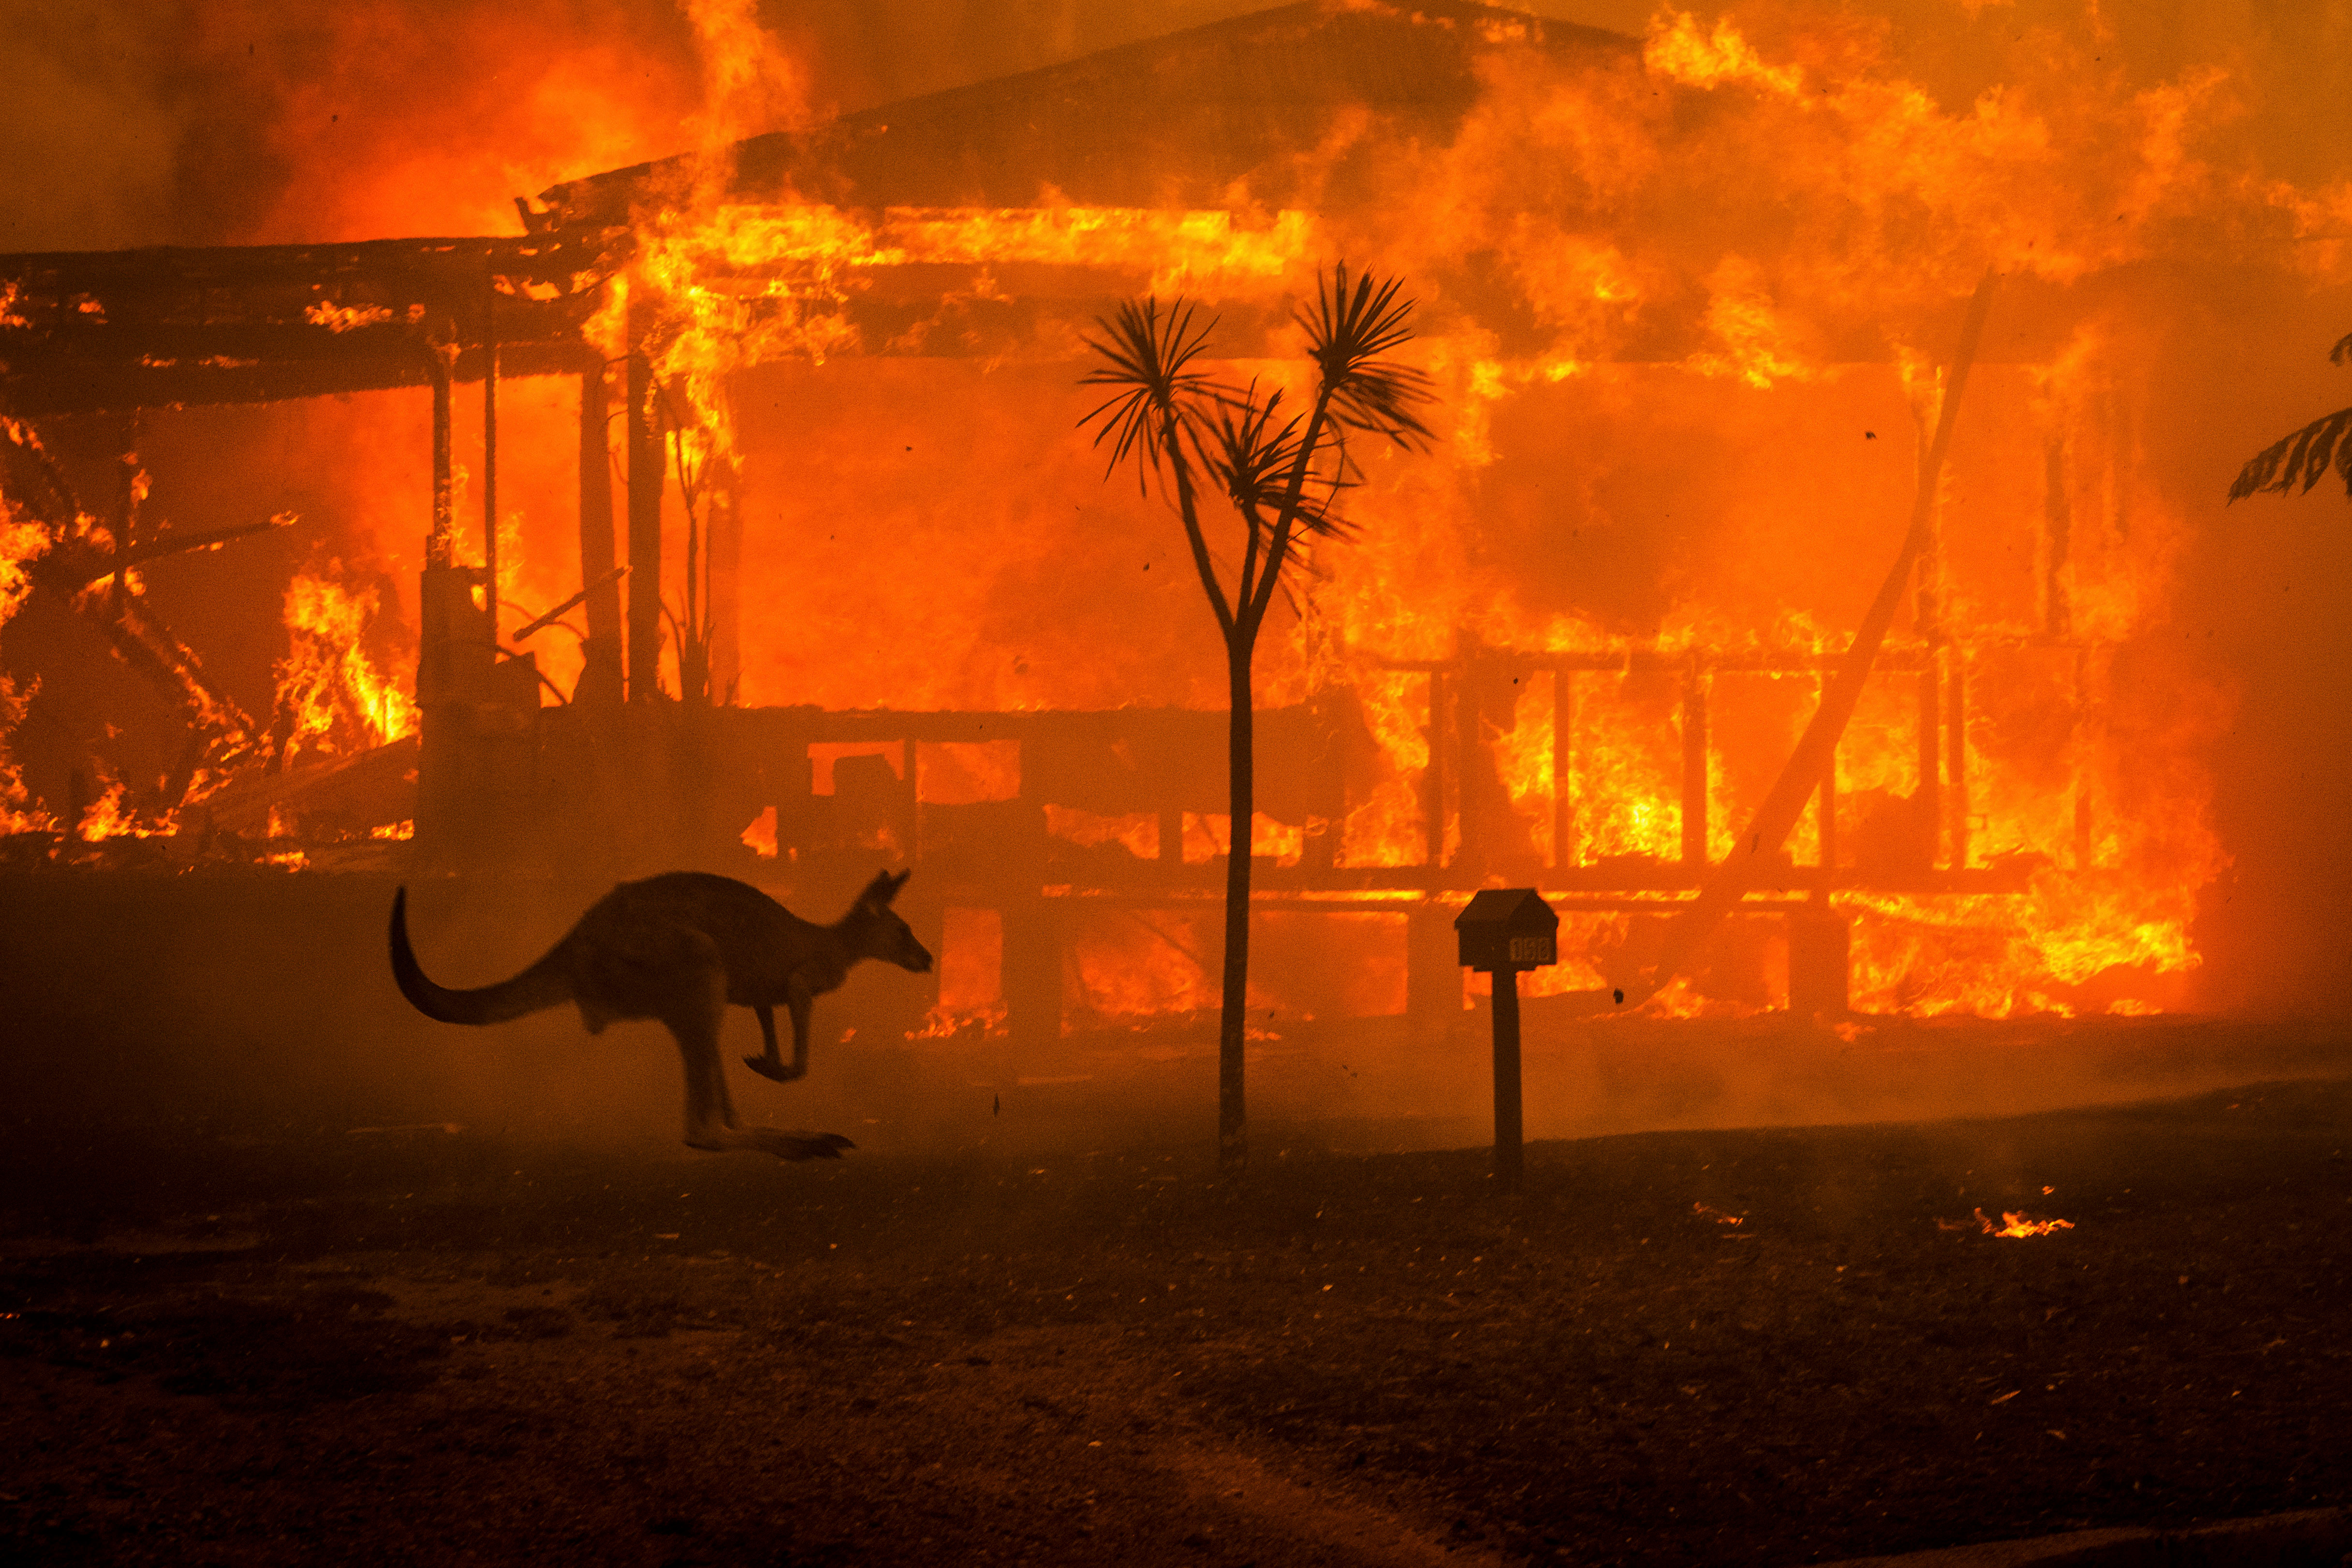 A kangaroo bounces past a burning house in Conjola, New South Wales, on New Year's Eve